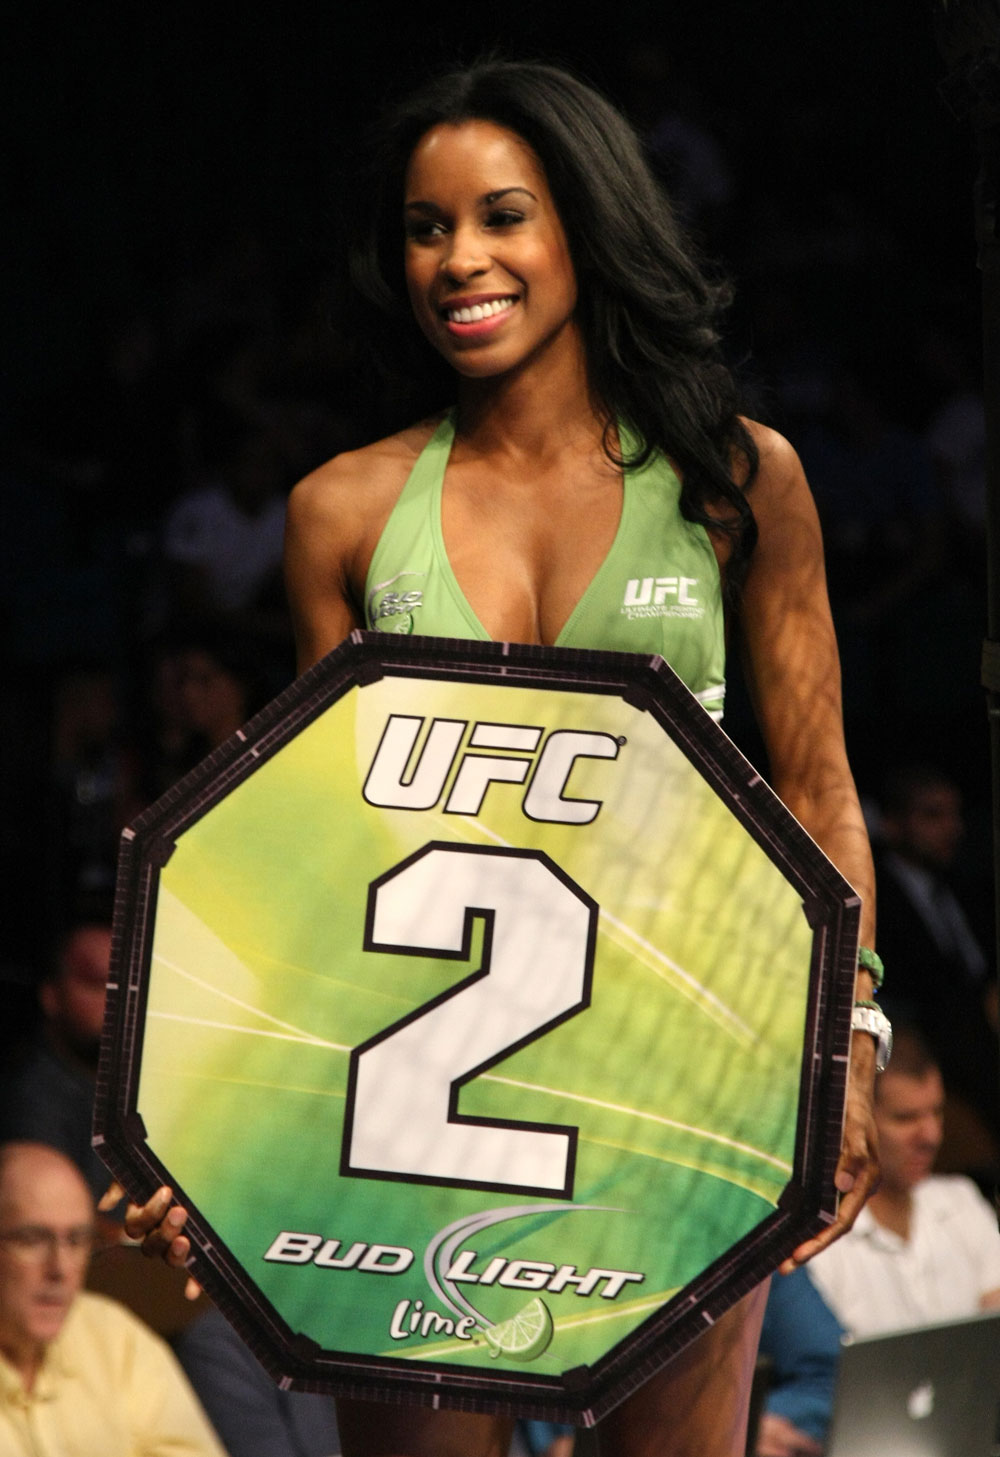 Octagon Girl Chandella Powell